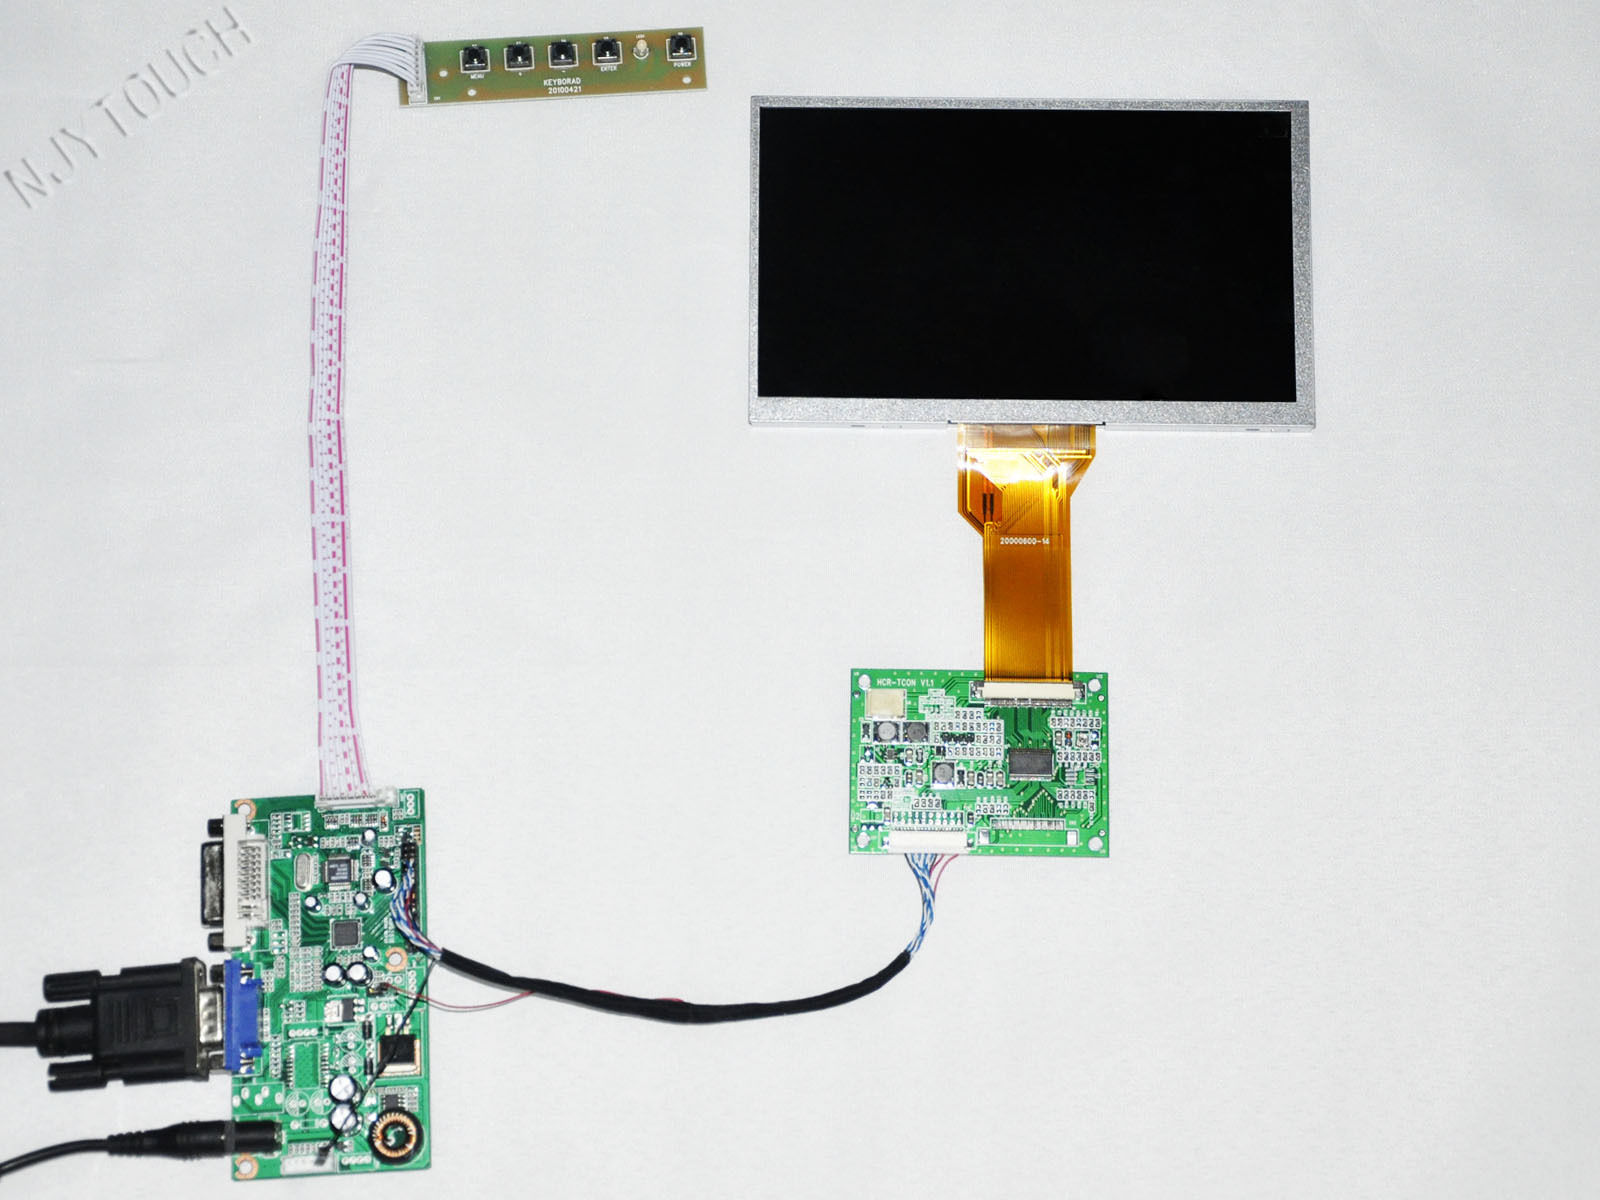 5251 LCD controller board kits